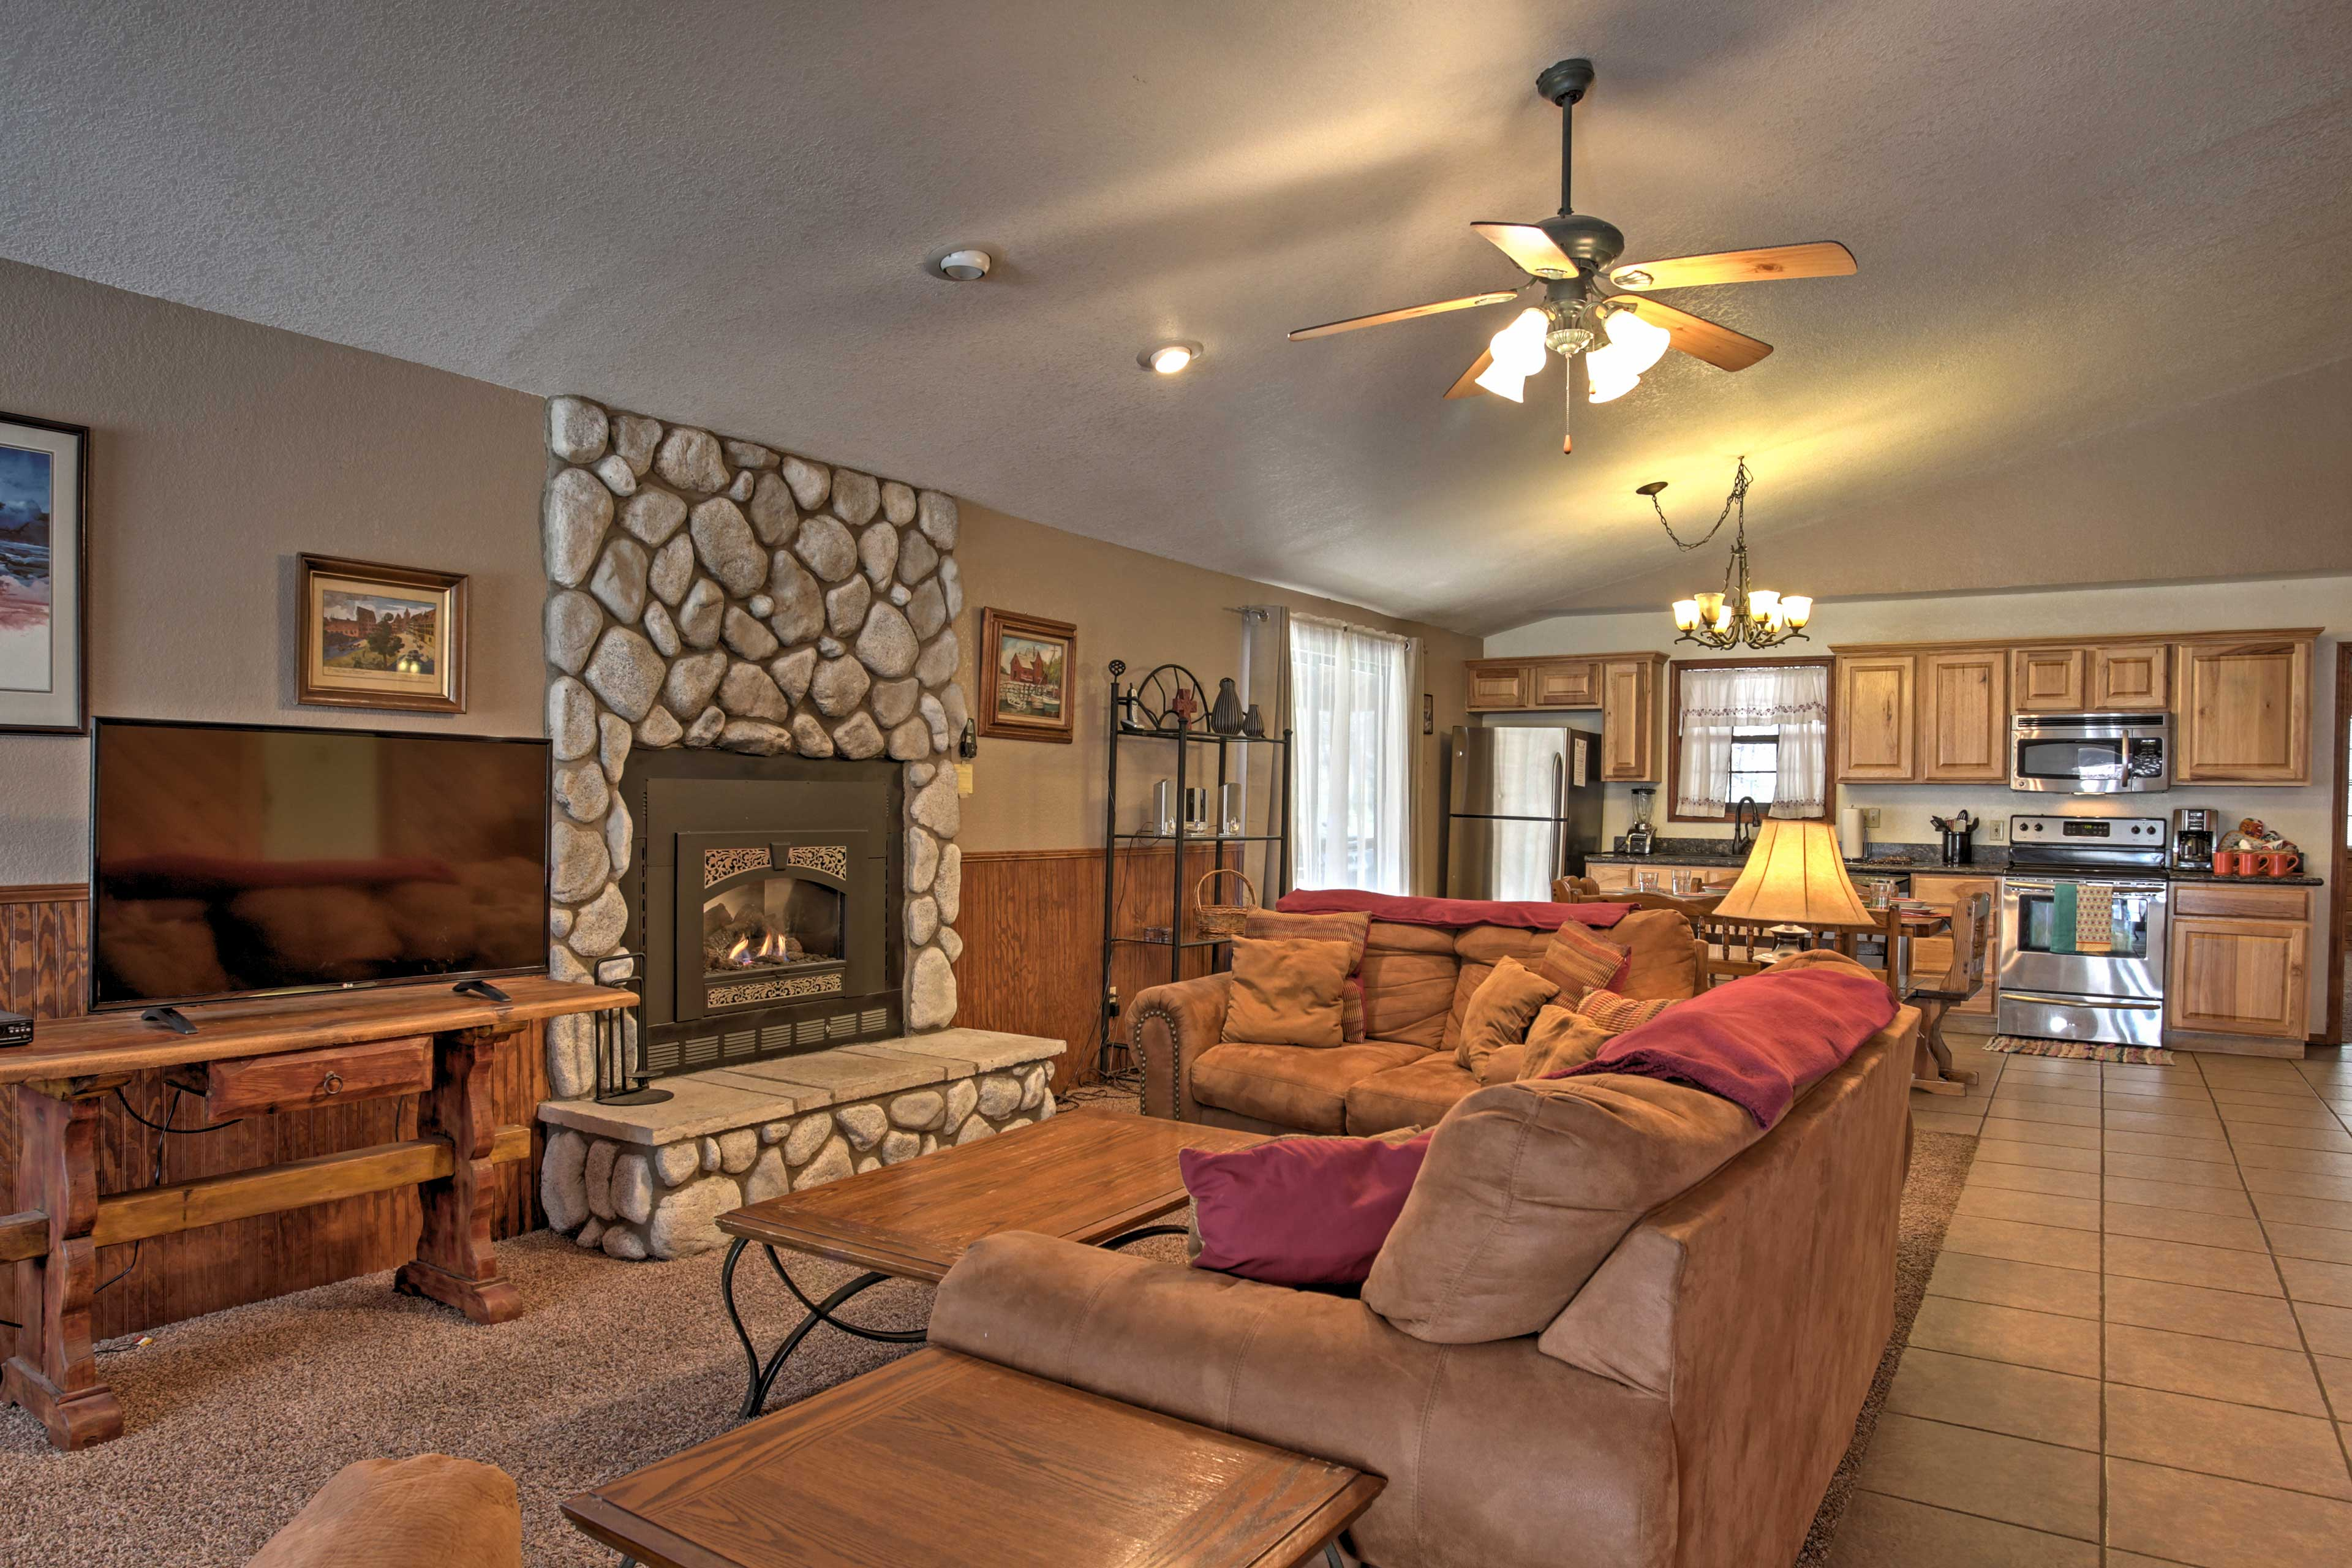 Unwind after a long day on the plush sofas. Pop in your favorite DVD and warm your toes by the fire!